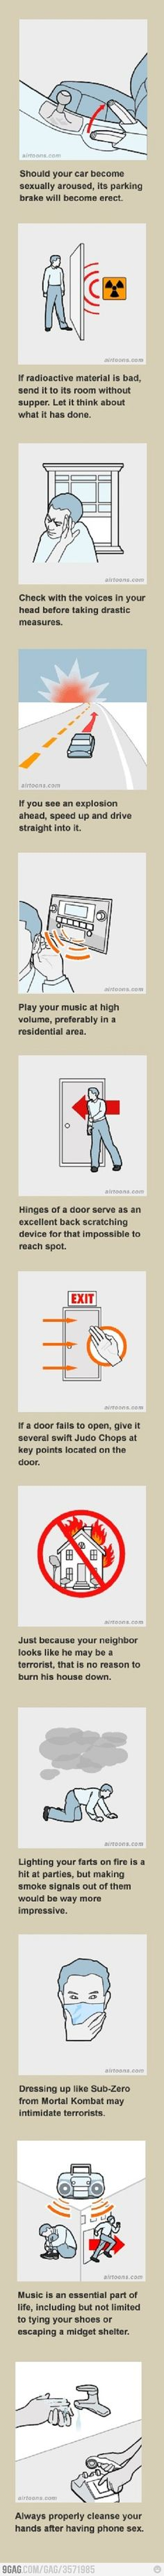 Interpreting safety guidelines  one of the funniest things I have seen on 9gag